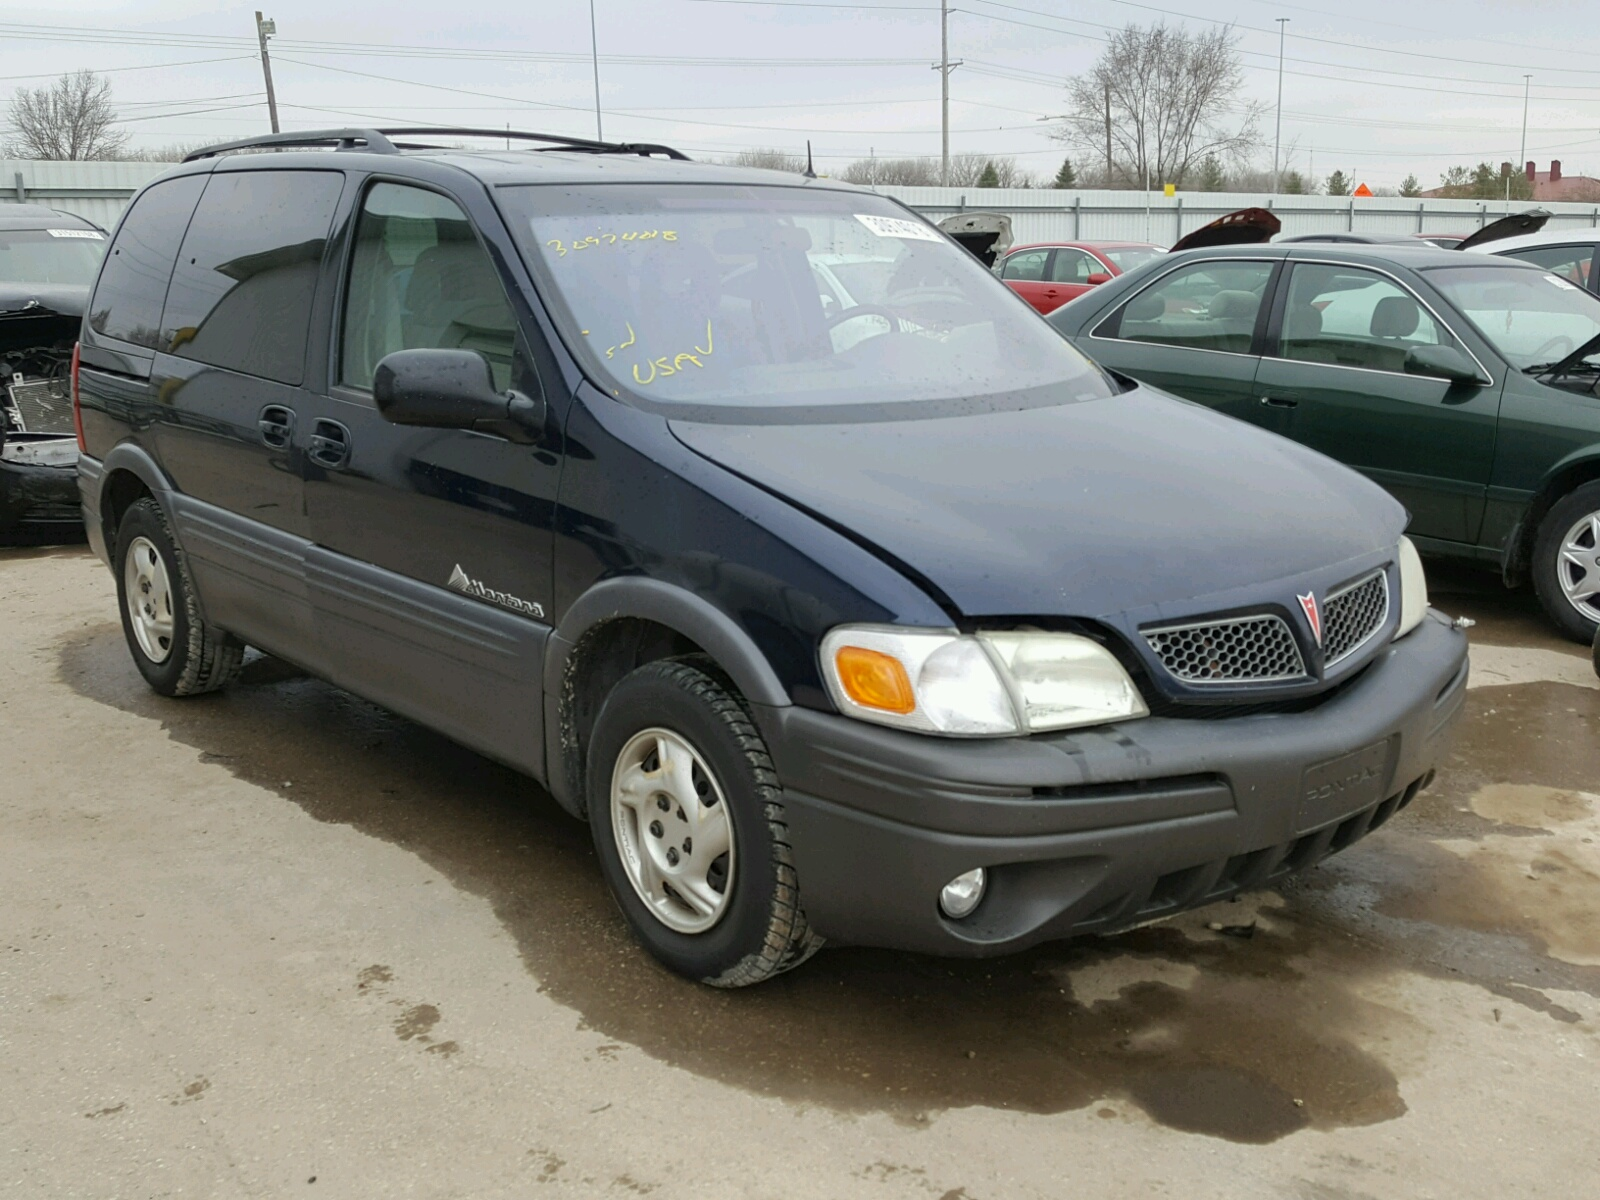 Auto Auction Ended On Vin 1g2zf55b064285852 2006 Pontiac